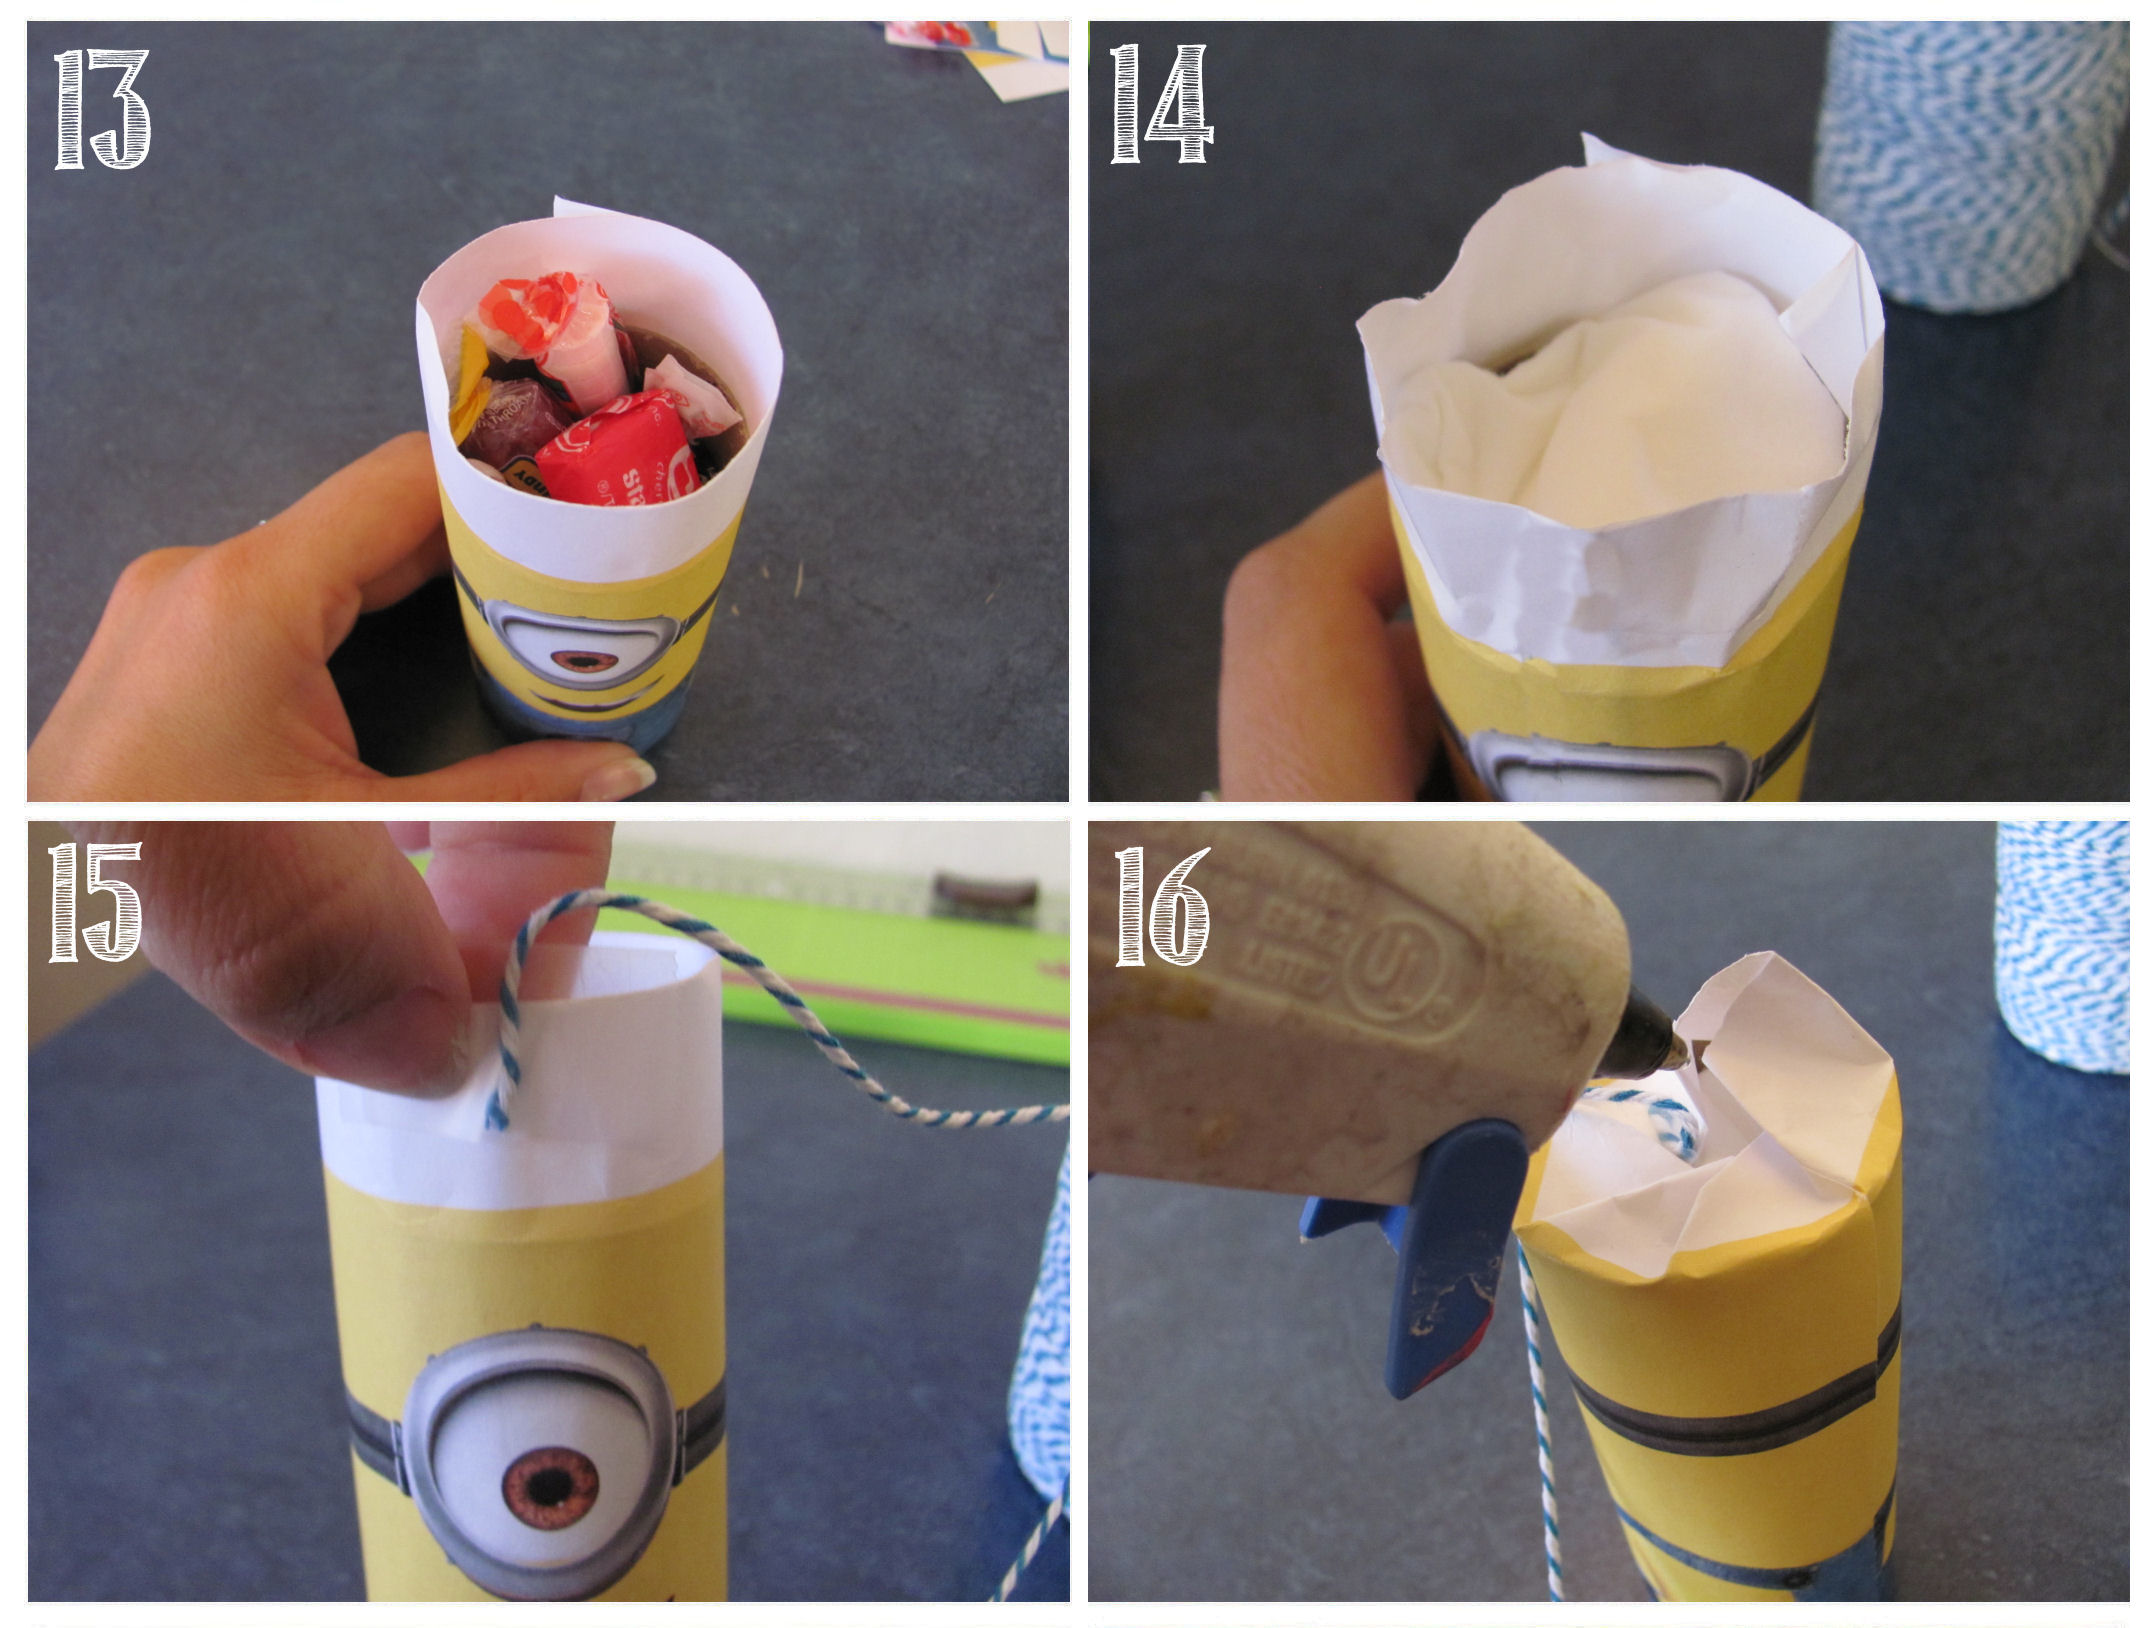 the final steps to make a mini minion pinata